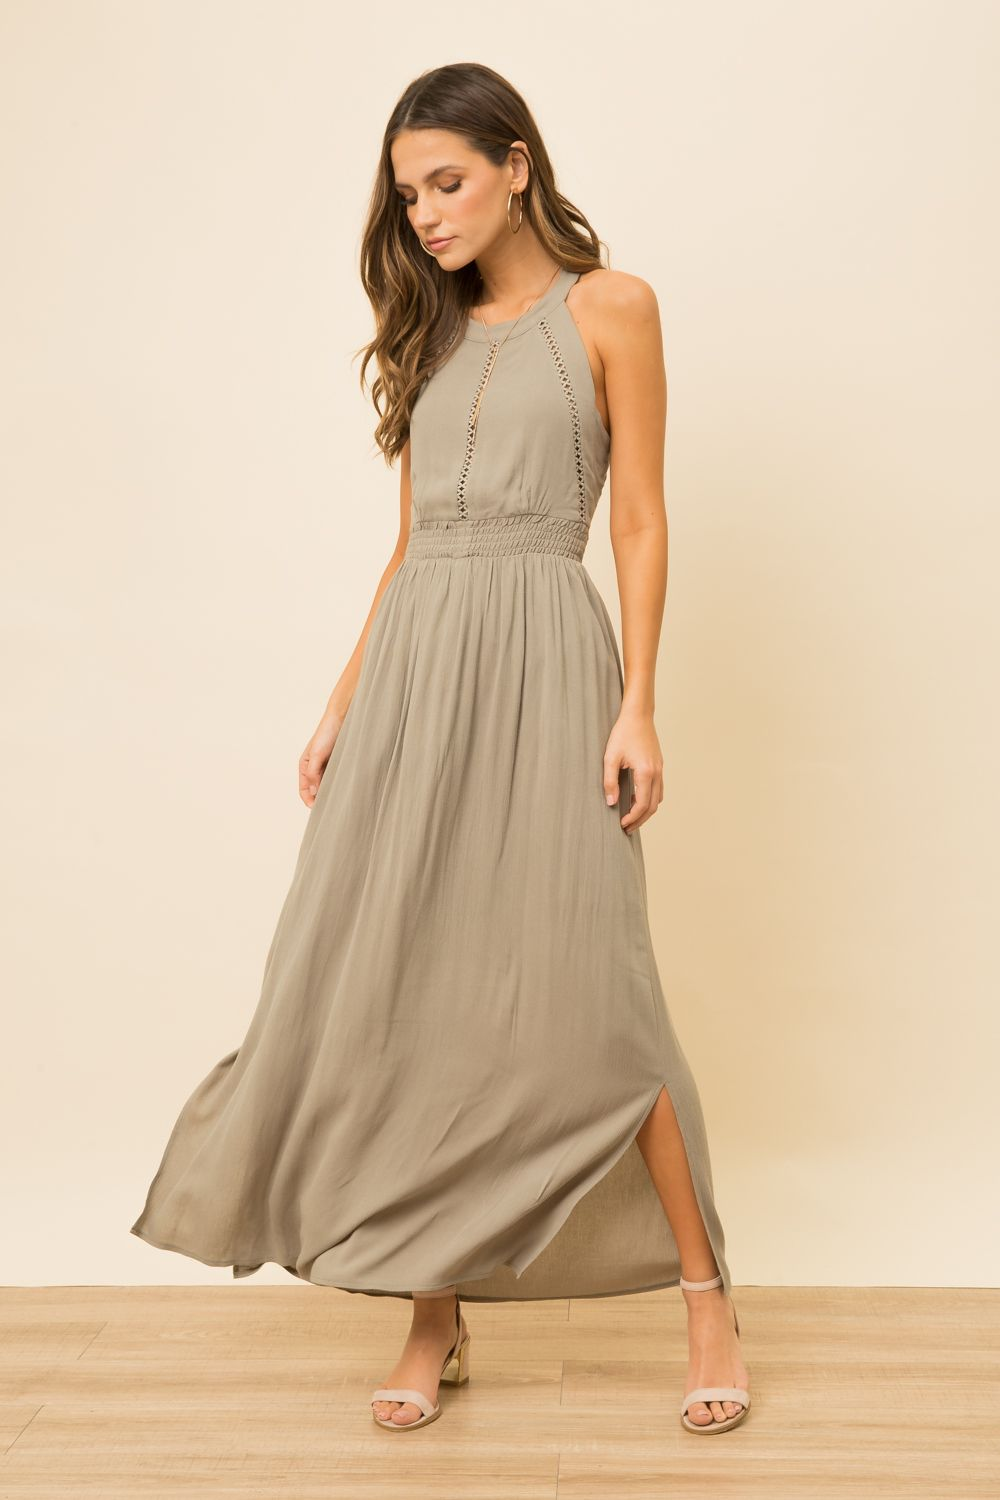 Dusty Olive Green Dress